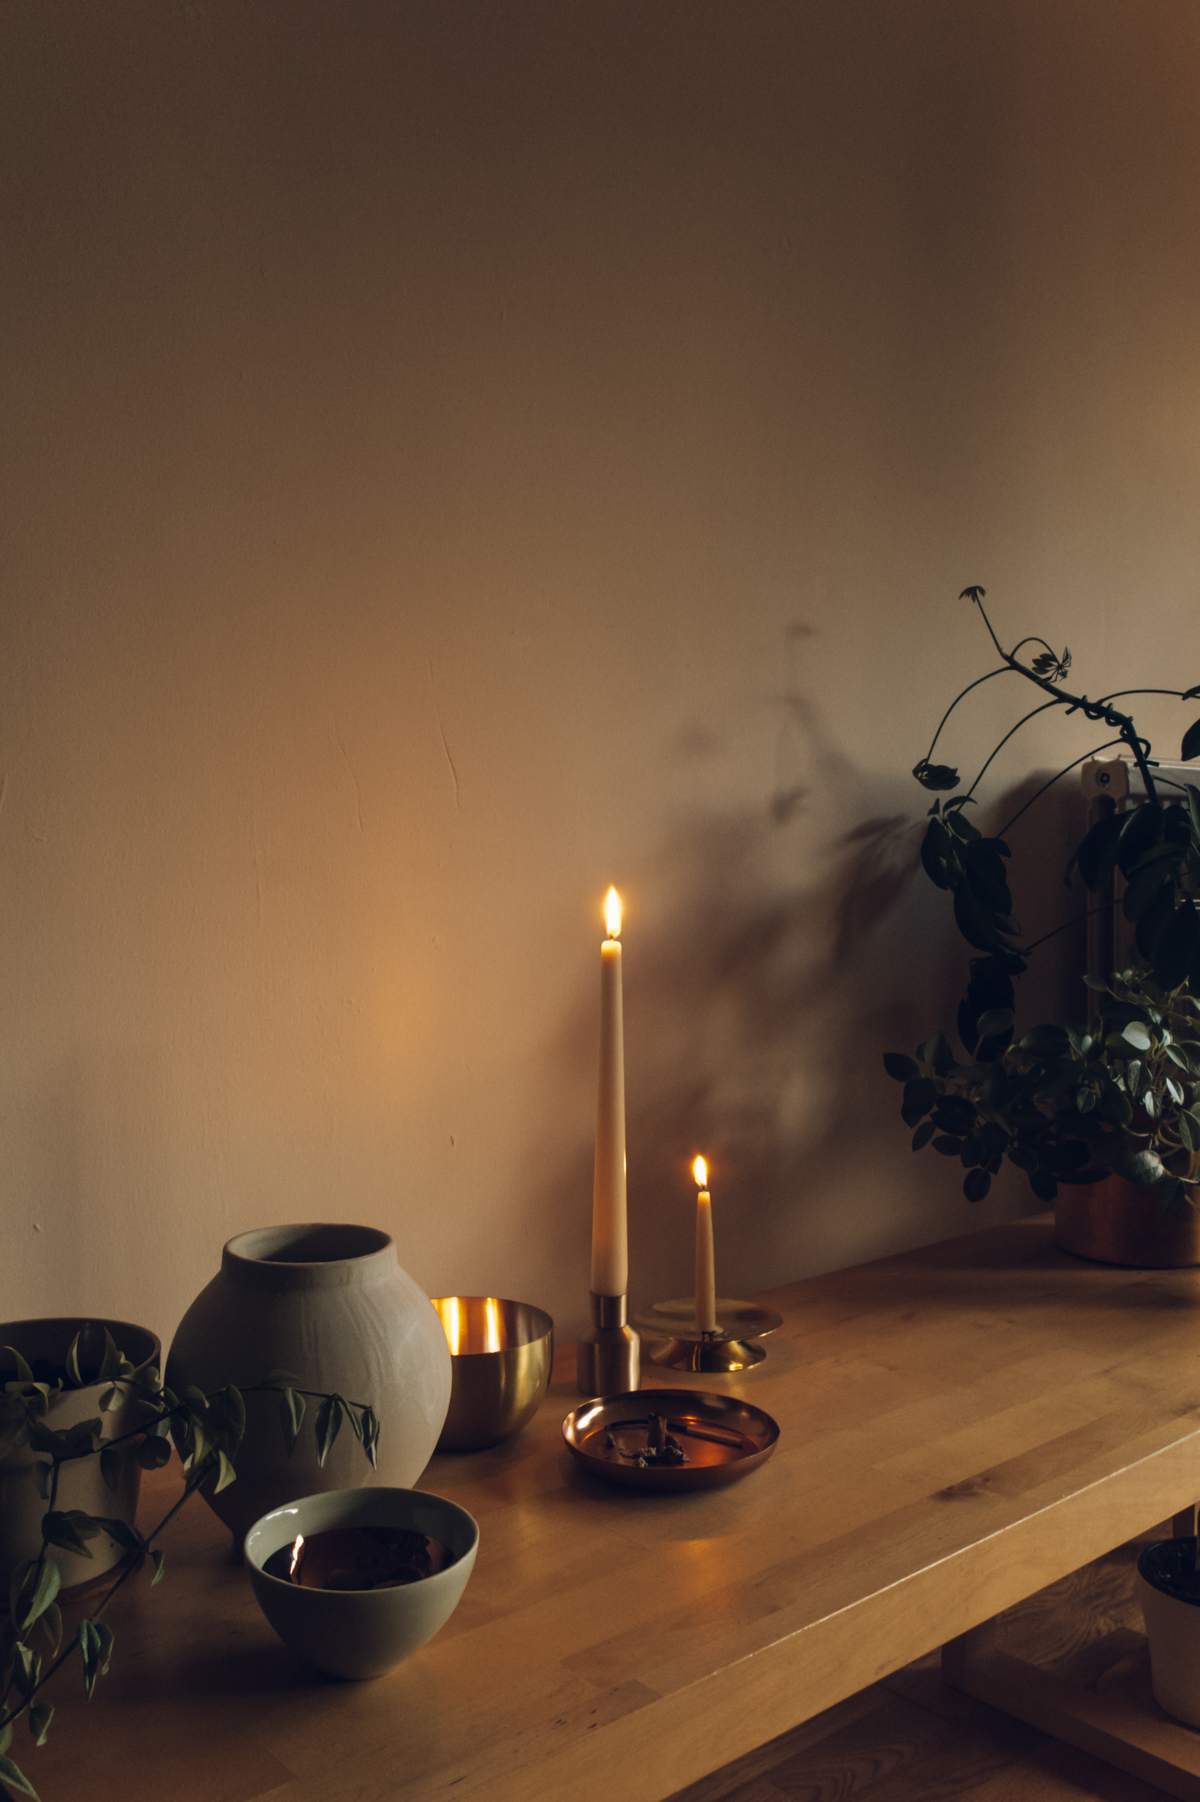 A cosy autumn candle-lit evening.